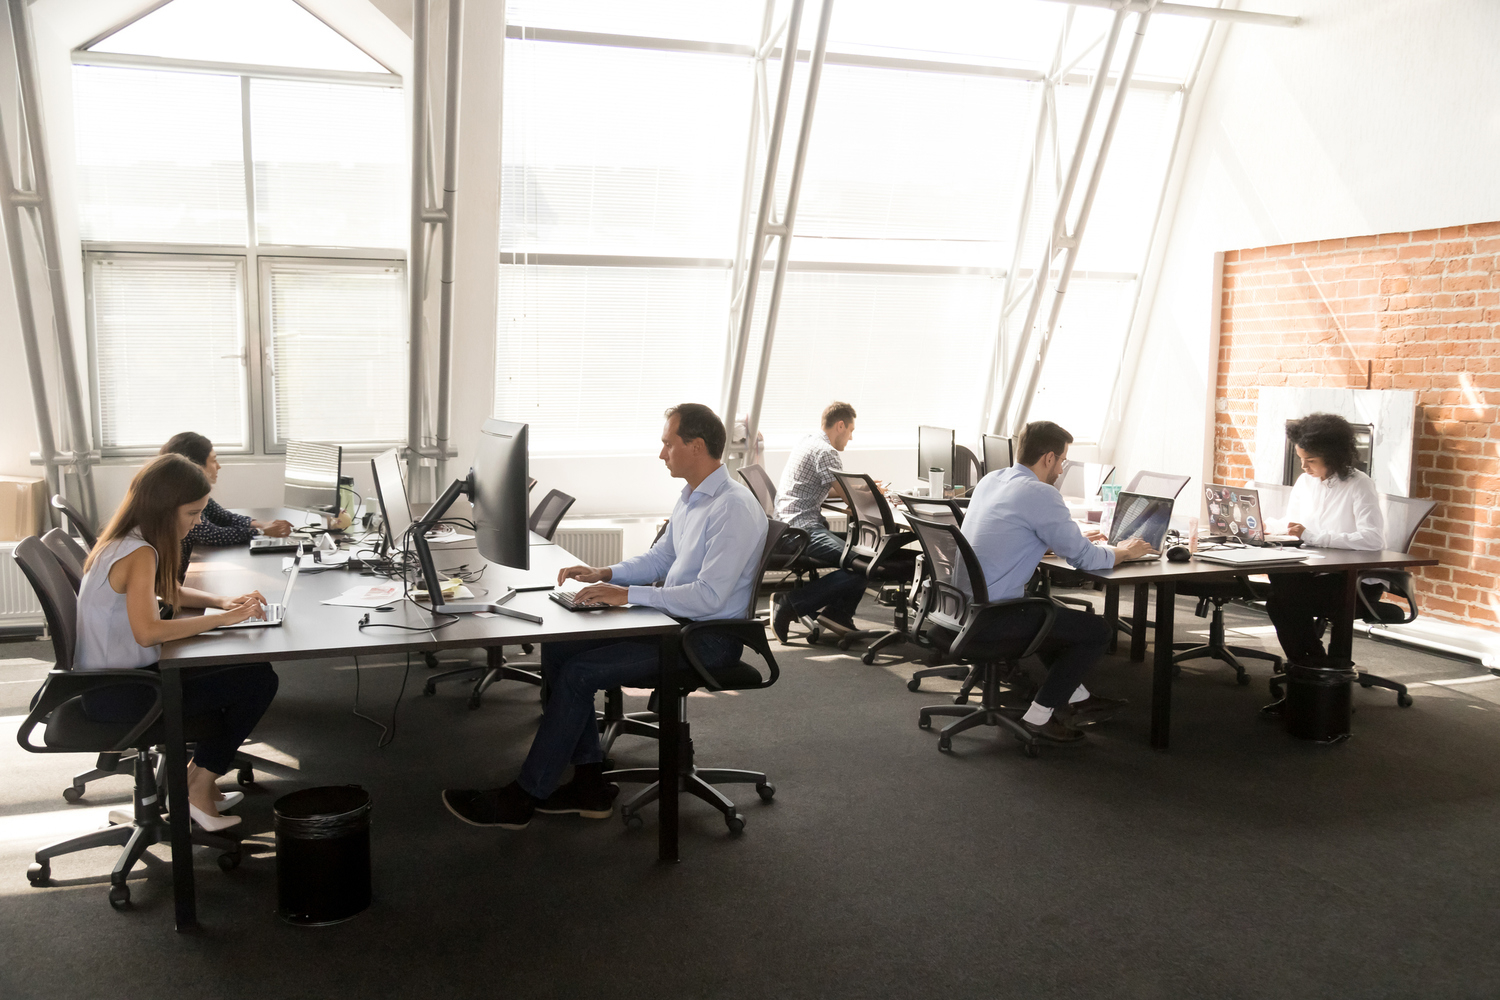 The need for shared office space